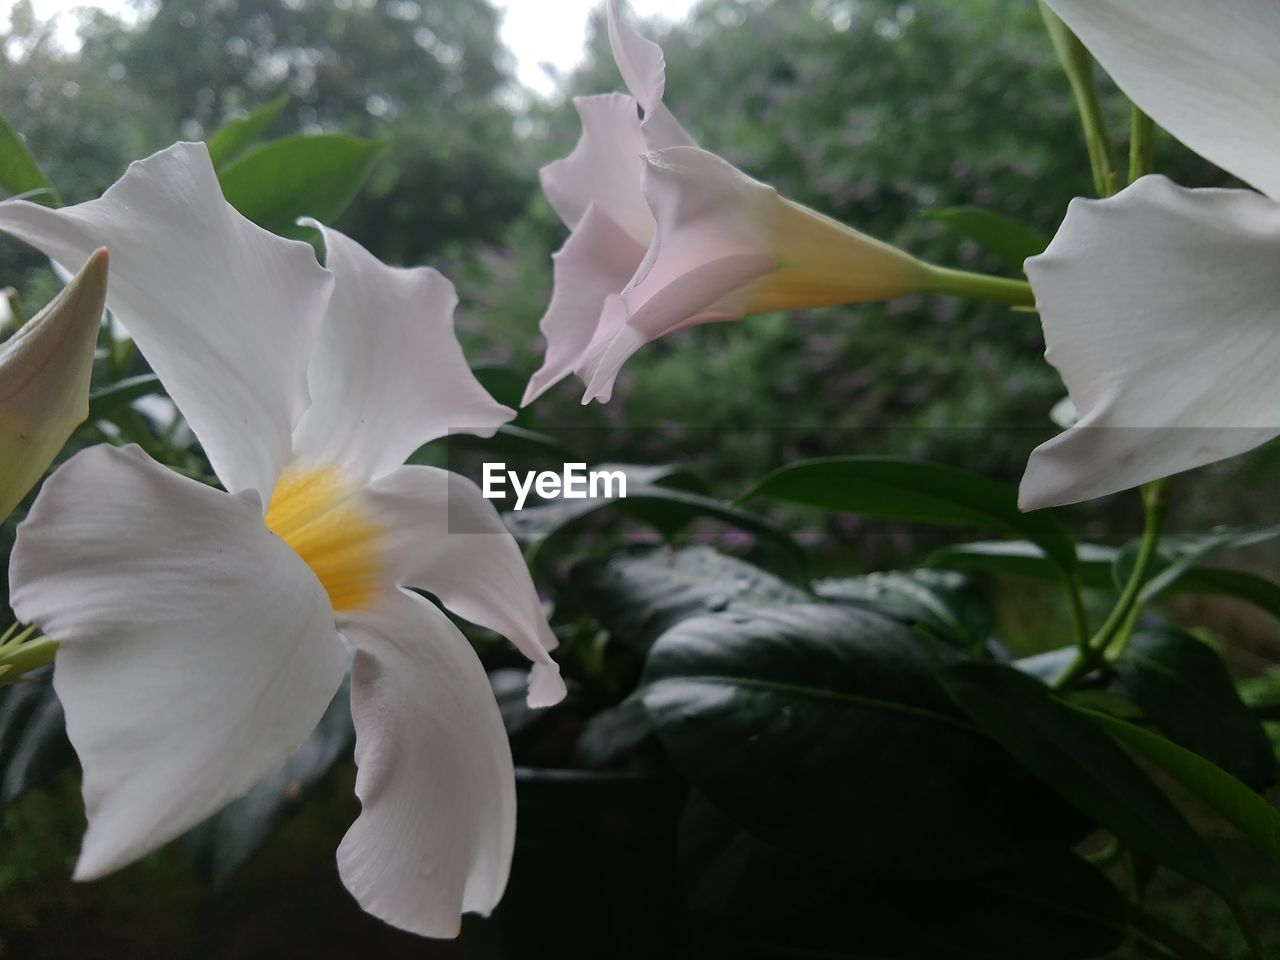 petal, flower, fragility, flower head, growth, beauty in nature, nature, white color, blooming, plant, freshness, outdoors, close-up, no people, day, iris - plant, springtime, tree, day lily